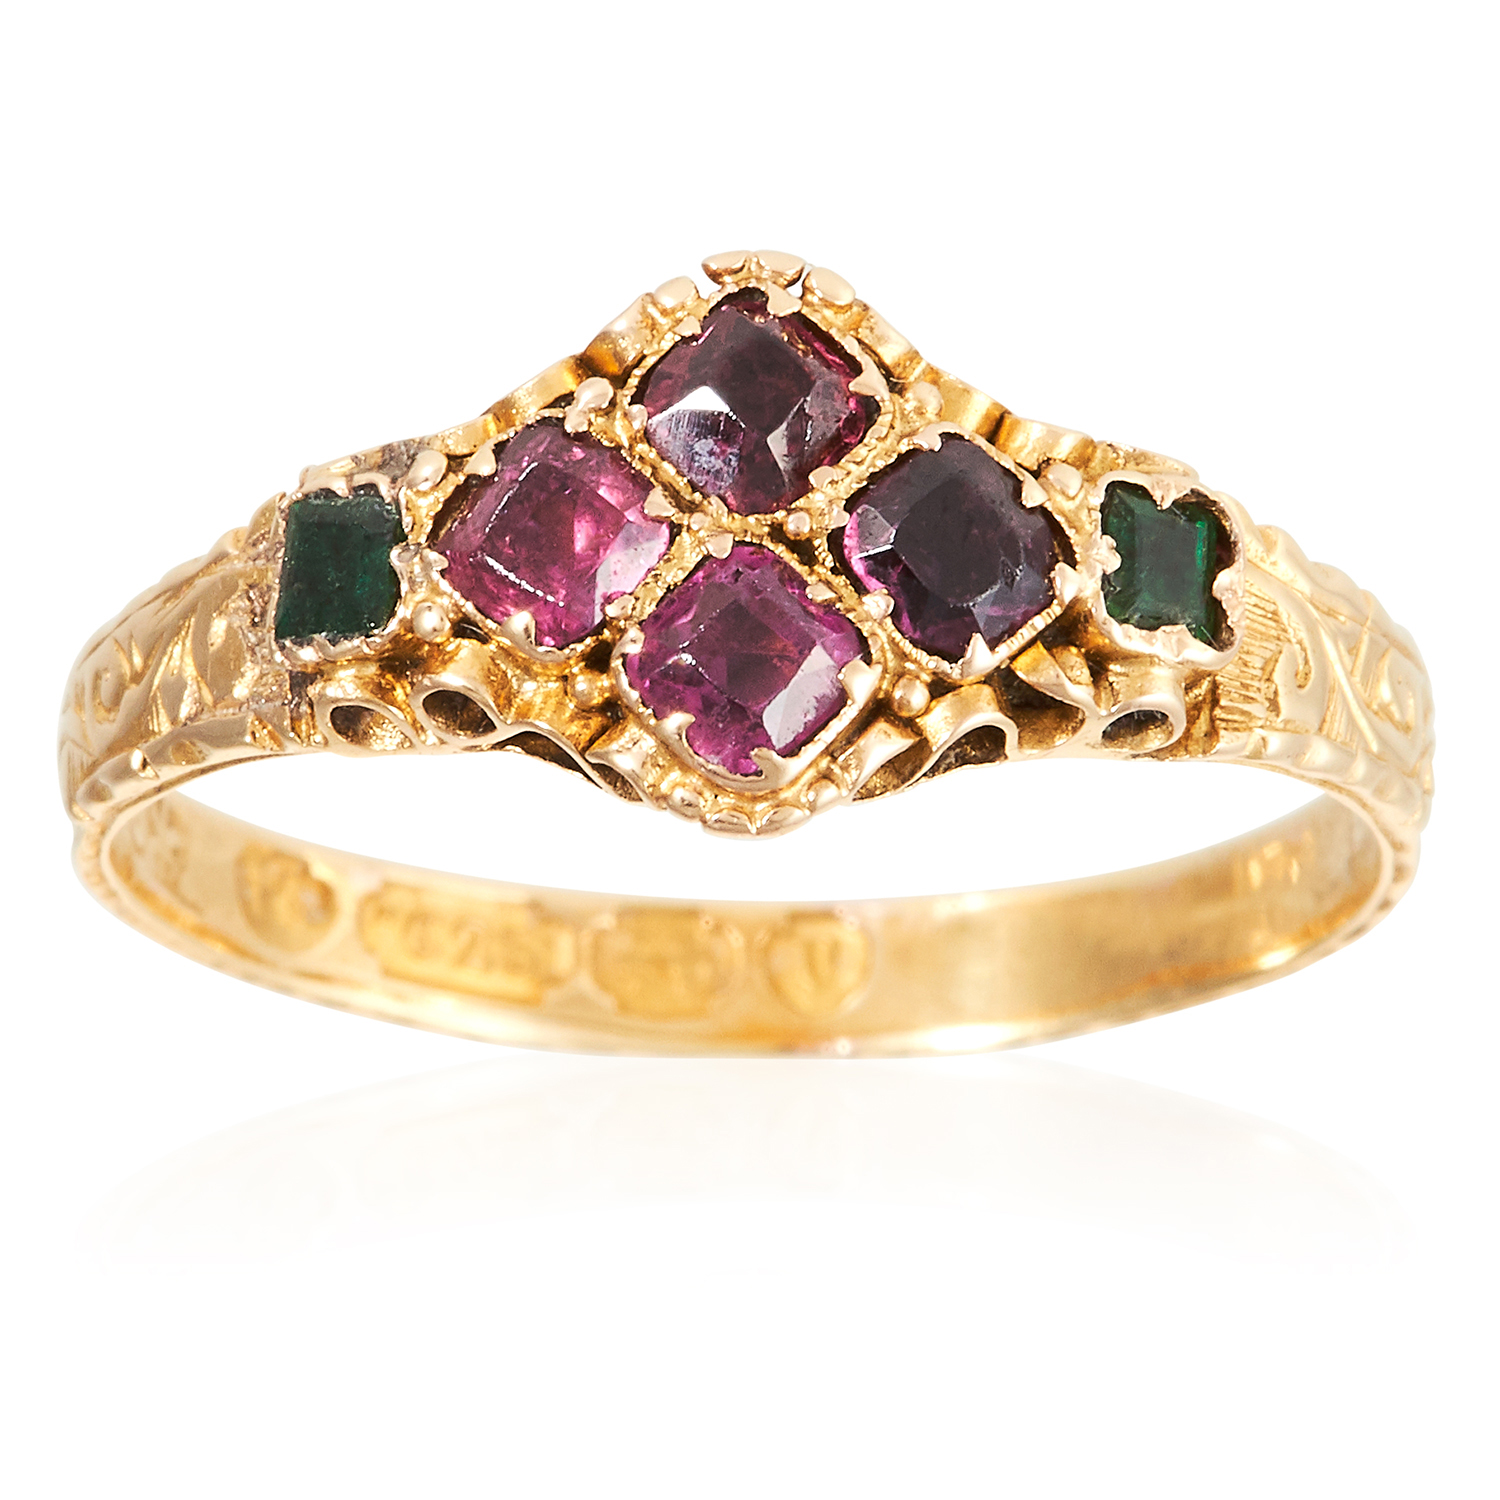 AN ANTIQUE GARNET AND EMERALD RING, CIRCA 1870 in 15 carat yellow gold, set with a quatrefoil